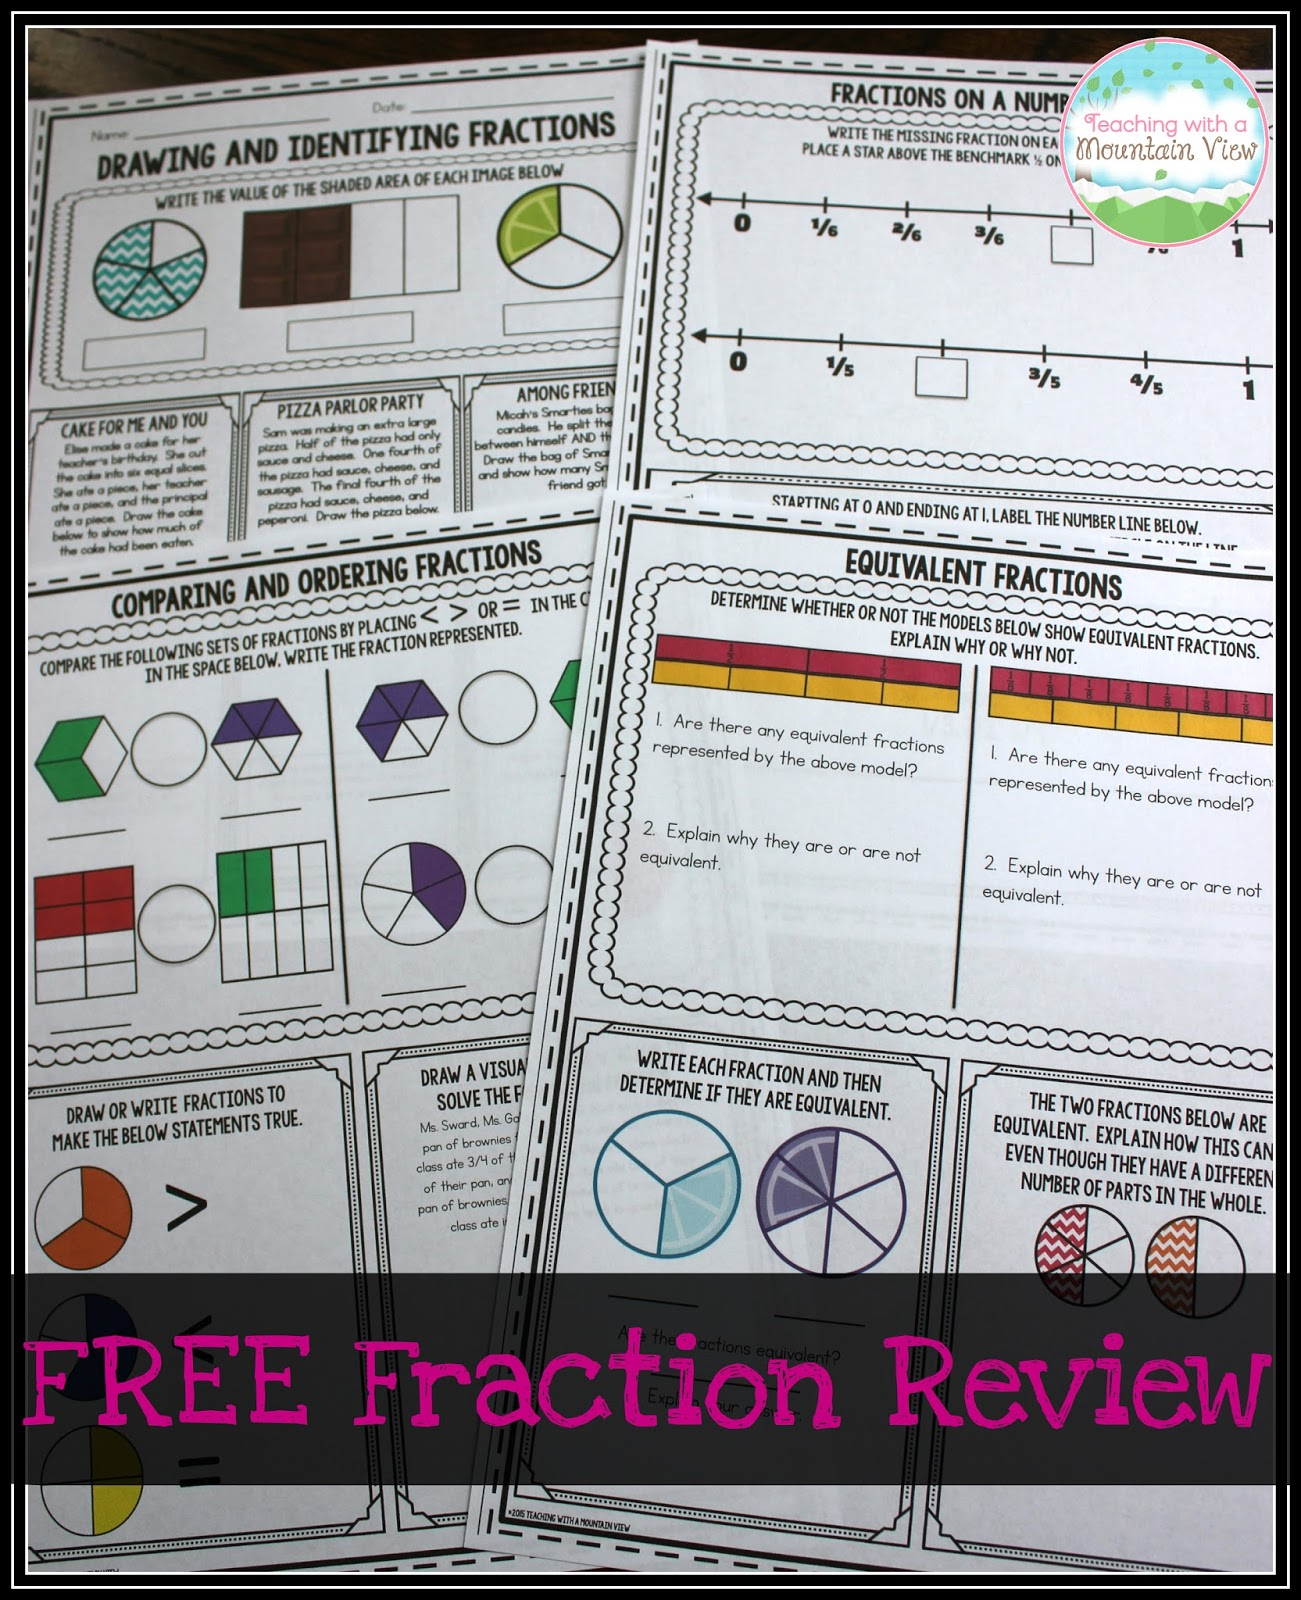 Student Success Center Fraction Review Sheet Answers